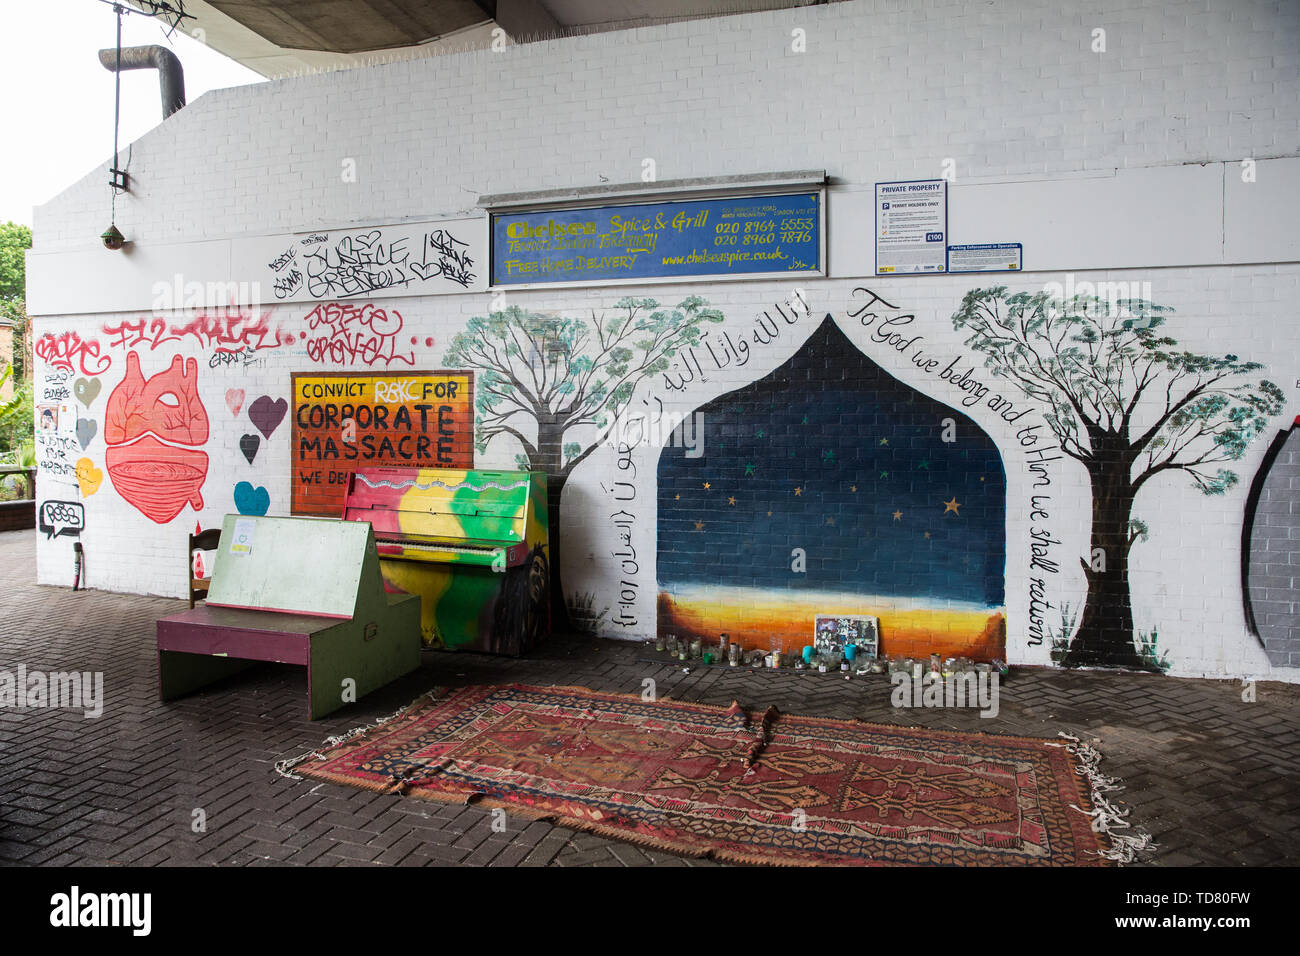 London, UK. 13 June, 2019. Murals and a prayer space underneath the Westway close to the Grenfell Tower in North Kensington. Tomorrow, the Grenfell community will mark the second anniversary of the Grenfell Tower fire on 14th June 2017 in which at least 72 people died and over 70 were injured. Two years on, some family members remain in temporary accommodation and many are still traumatised. Phase 2 of the Grenfell Inquiry will begin in 2020, with criminal investigation findings expected to be sent to the Crown Prosecution Service in 2021. Credit: Mark Kerrison/Alamy Live News - Stock Image